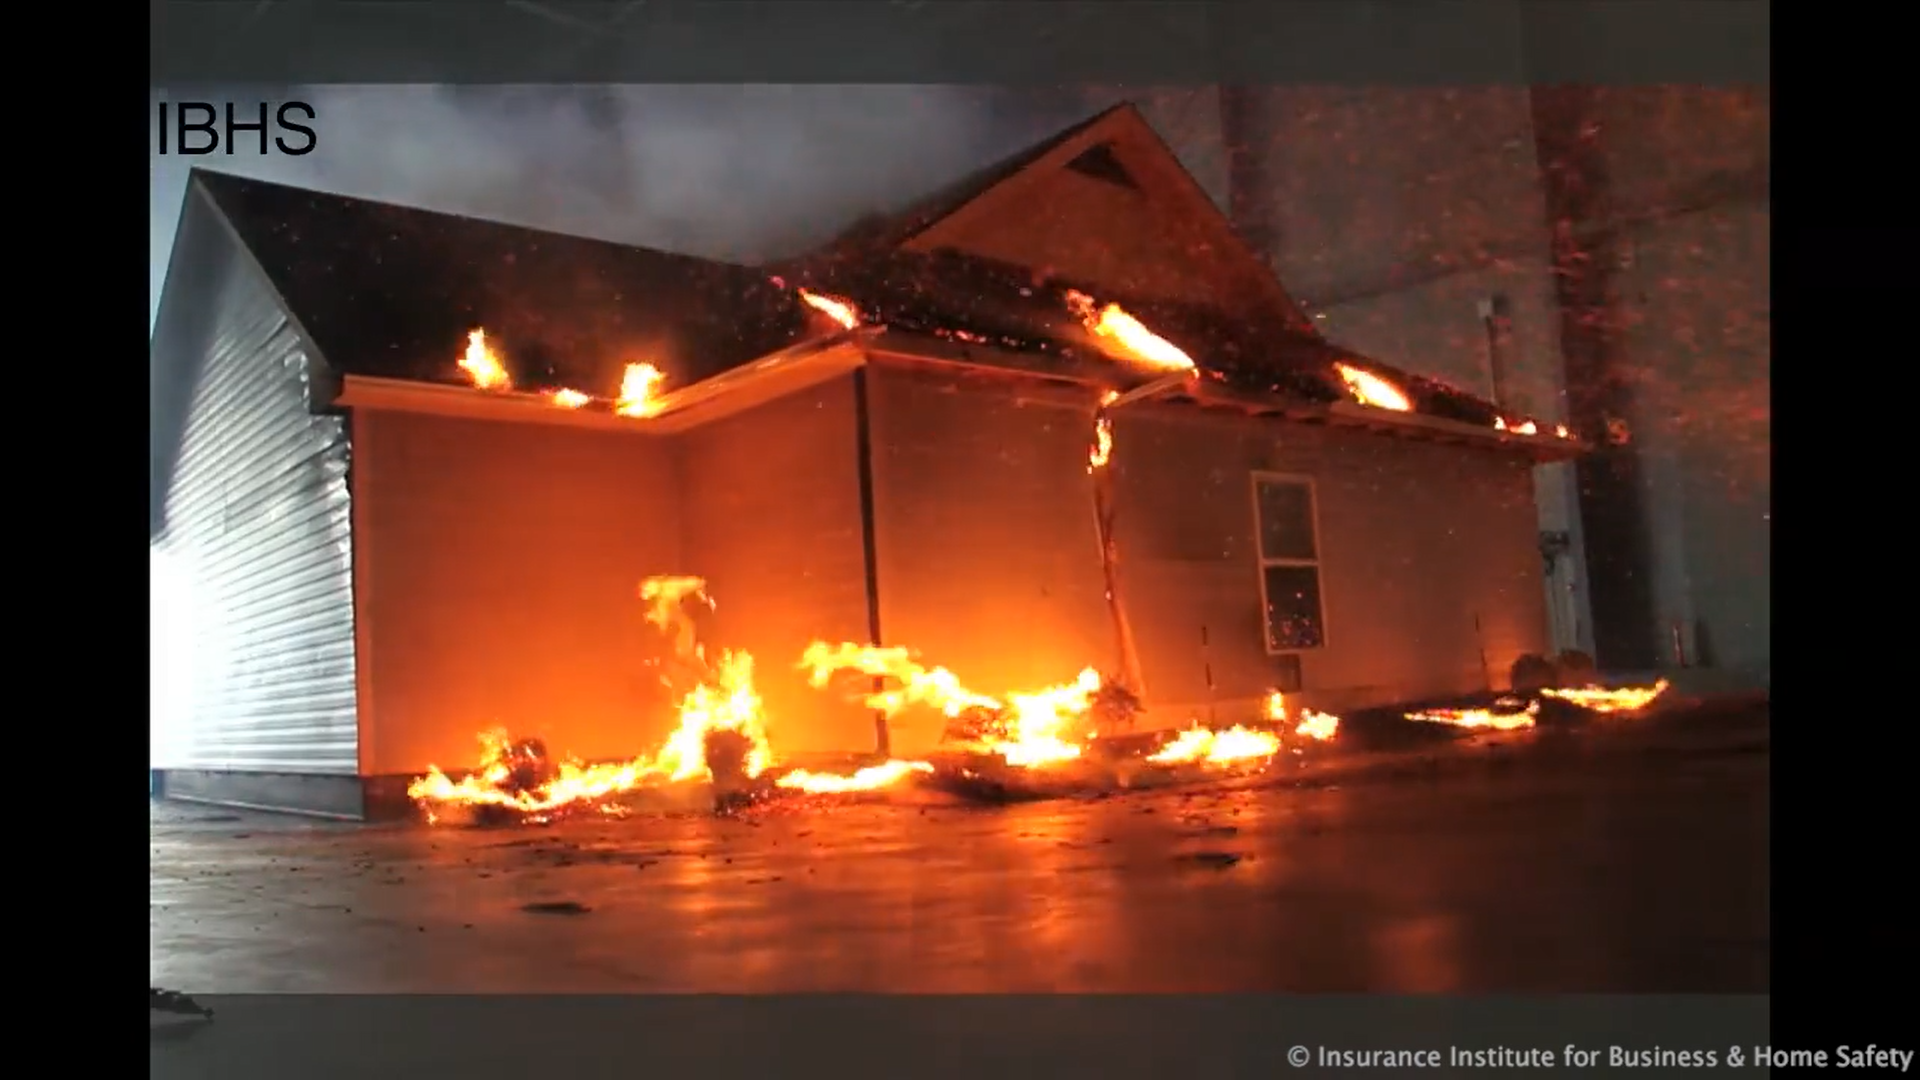 A full-size model house catching fire in an airborne-embers experiment. The points of ignition are where dry kindling has accumulated, such as the gutters and the mulch around the house.